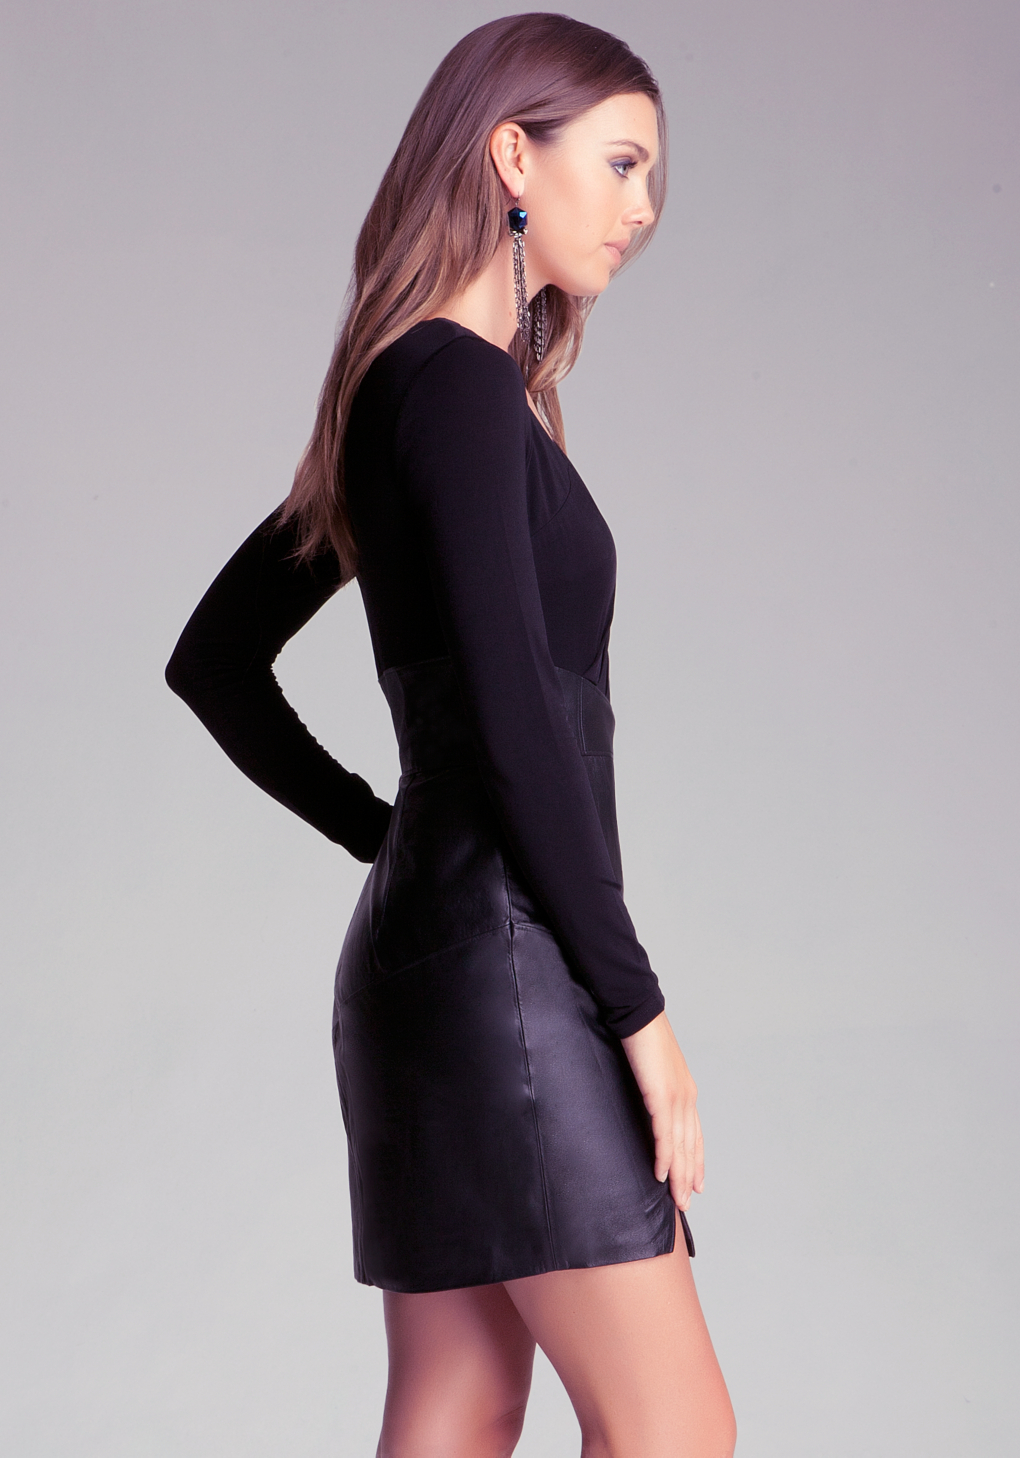 Bebe Leather Skirt Dress With Zipper In Nude Black Lyst